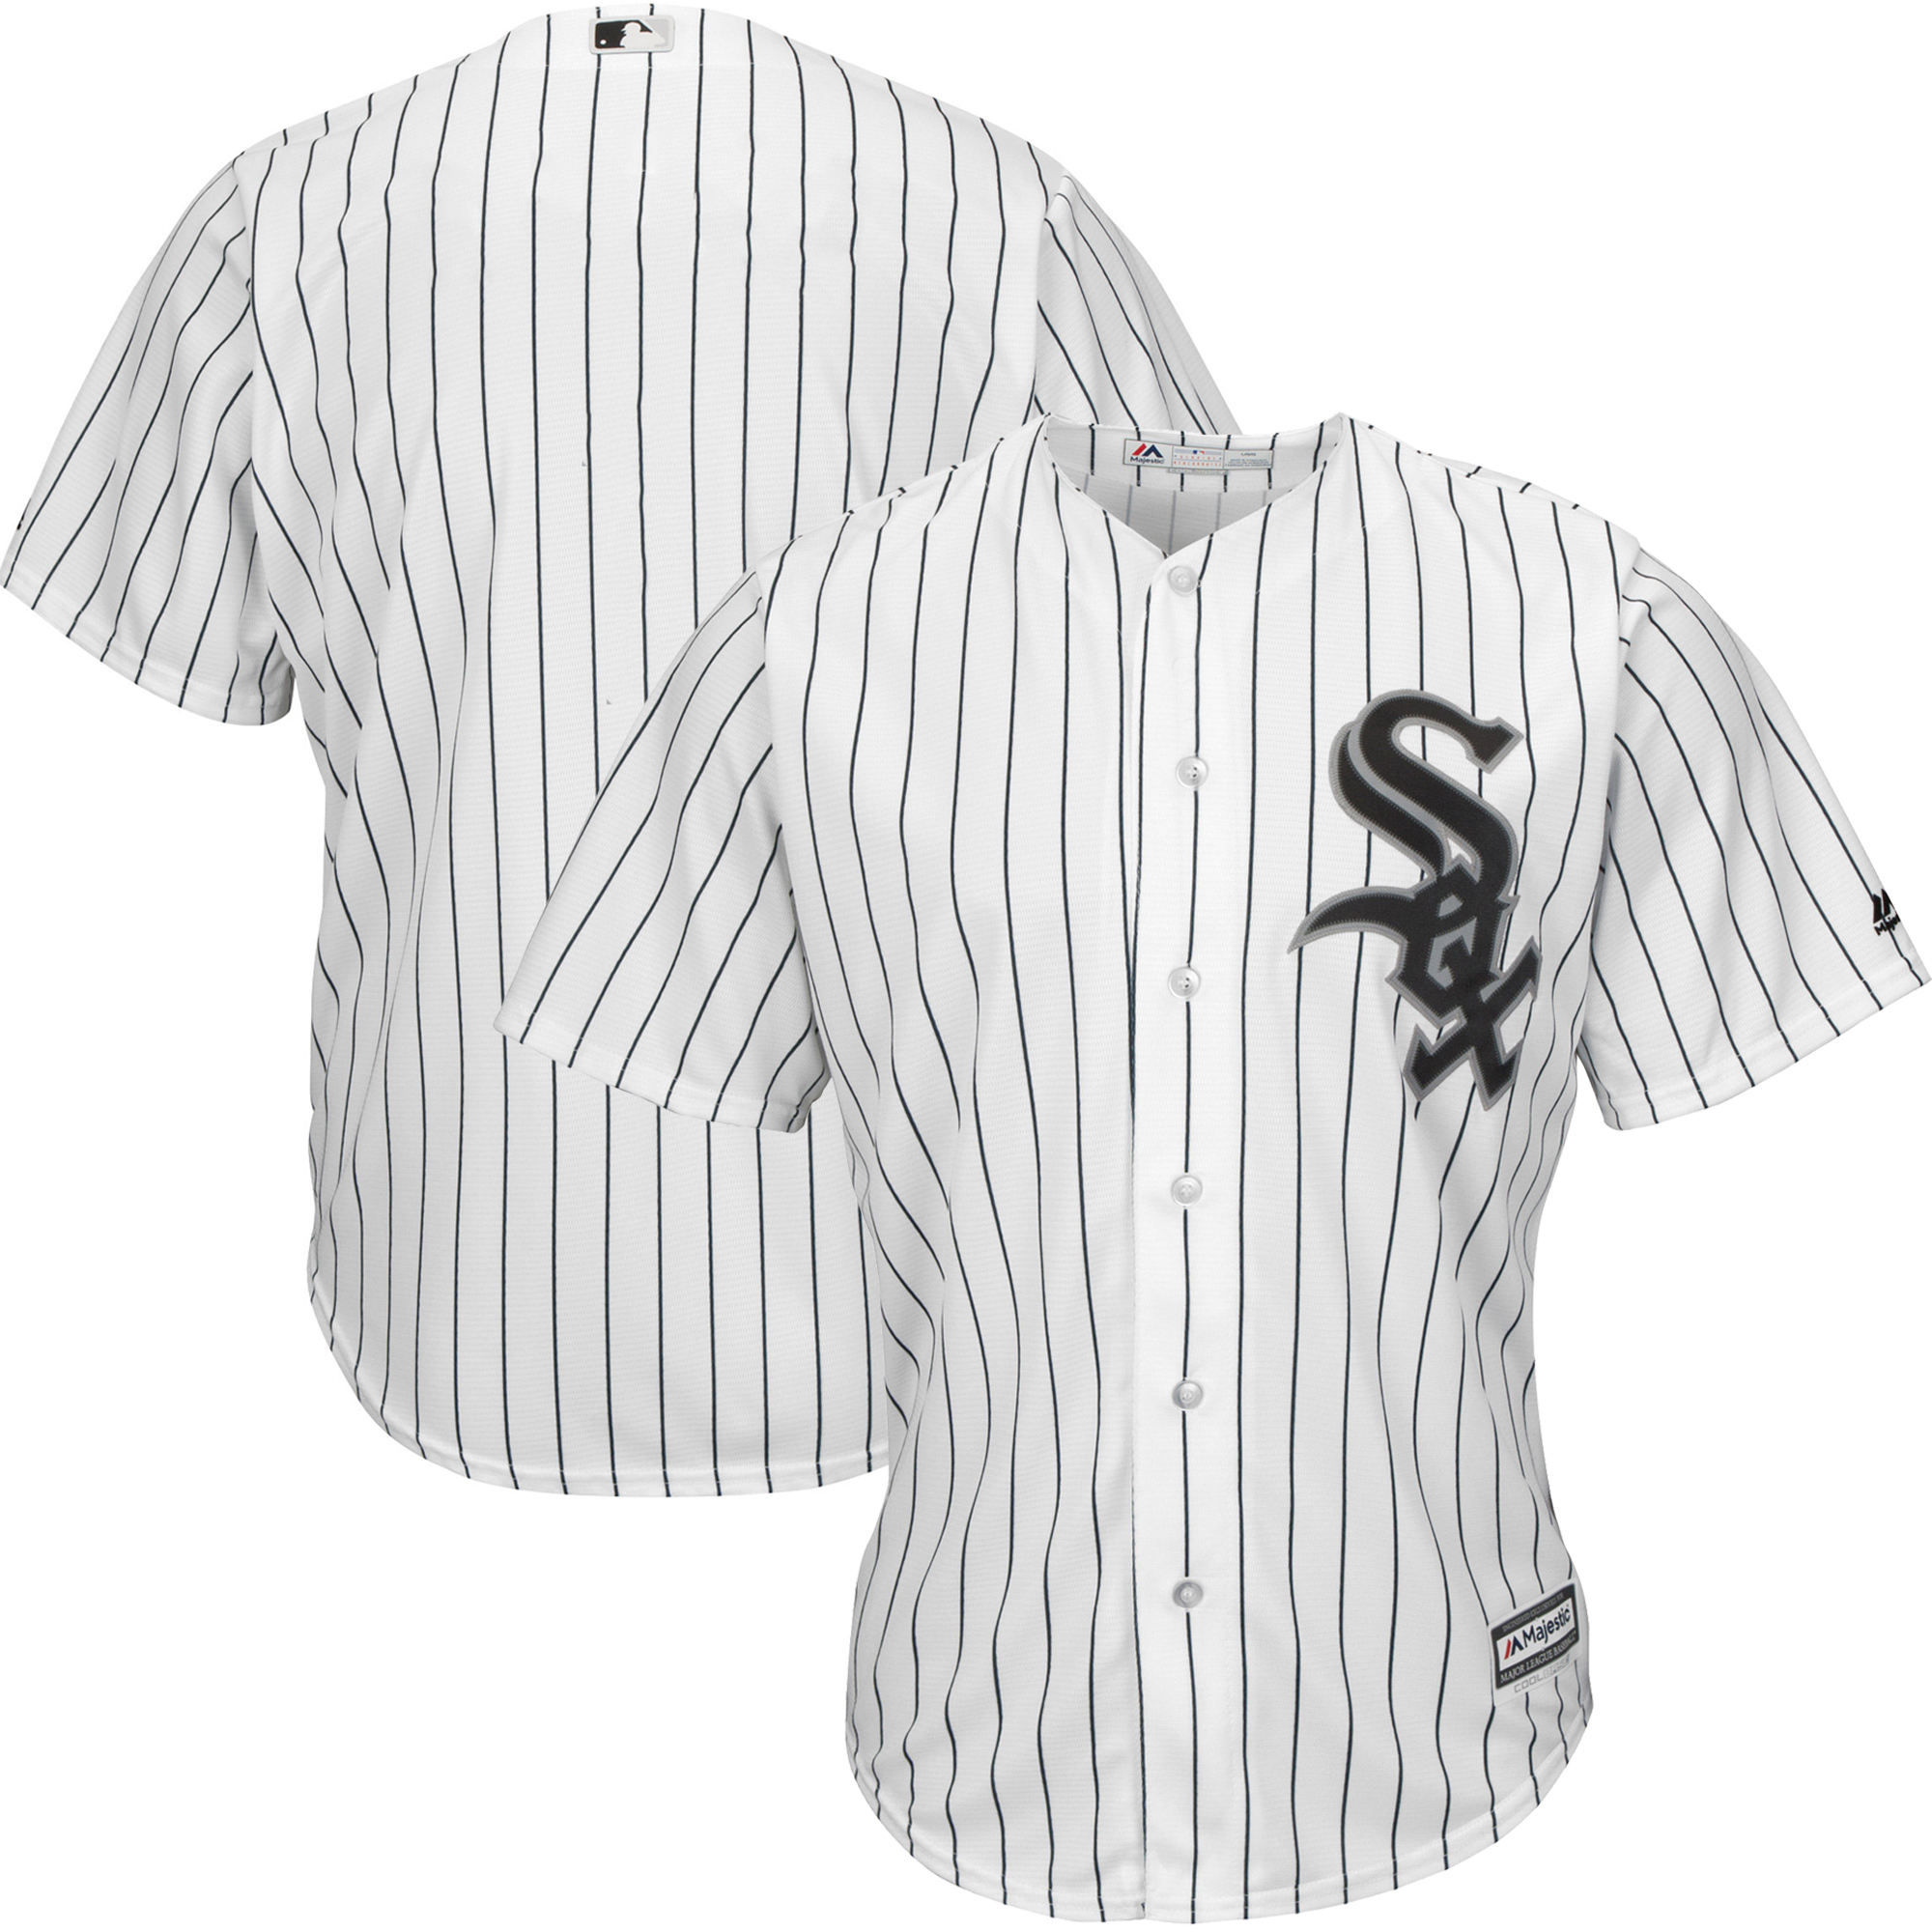 Chicago White Sox Majestic Official Cool Base Jersey - White